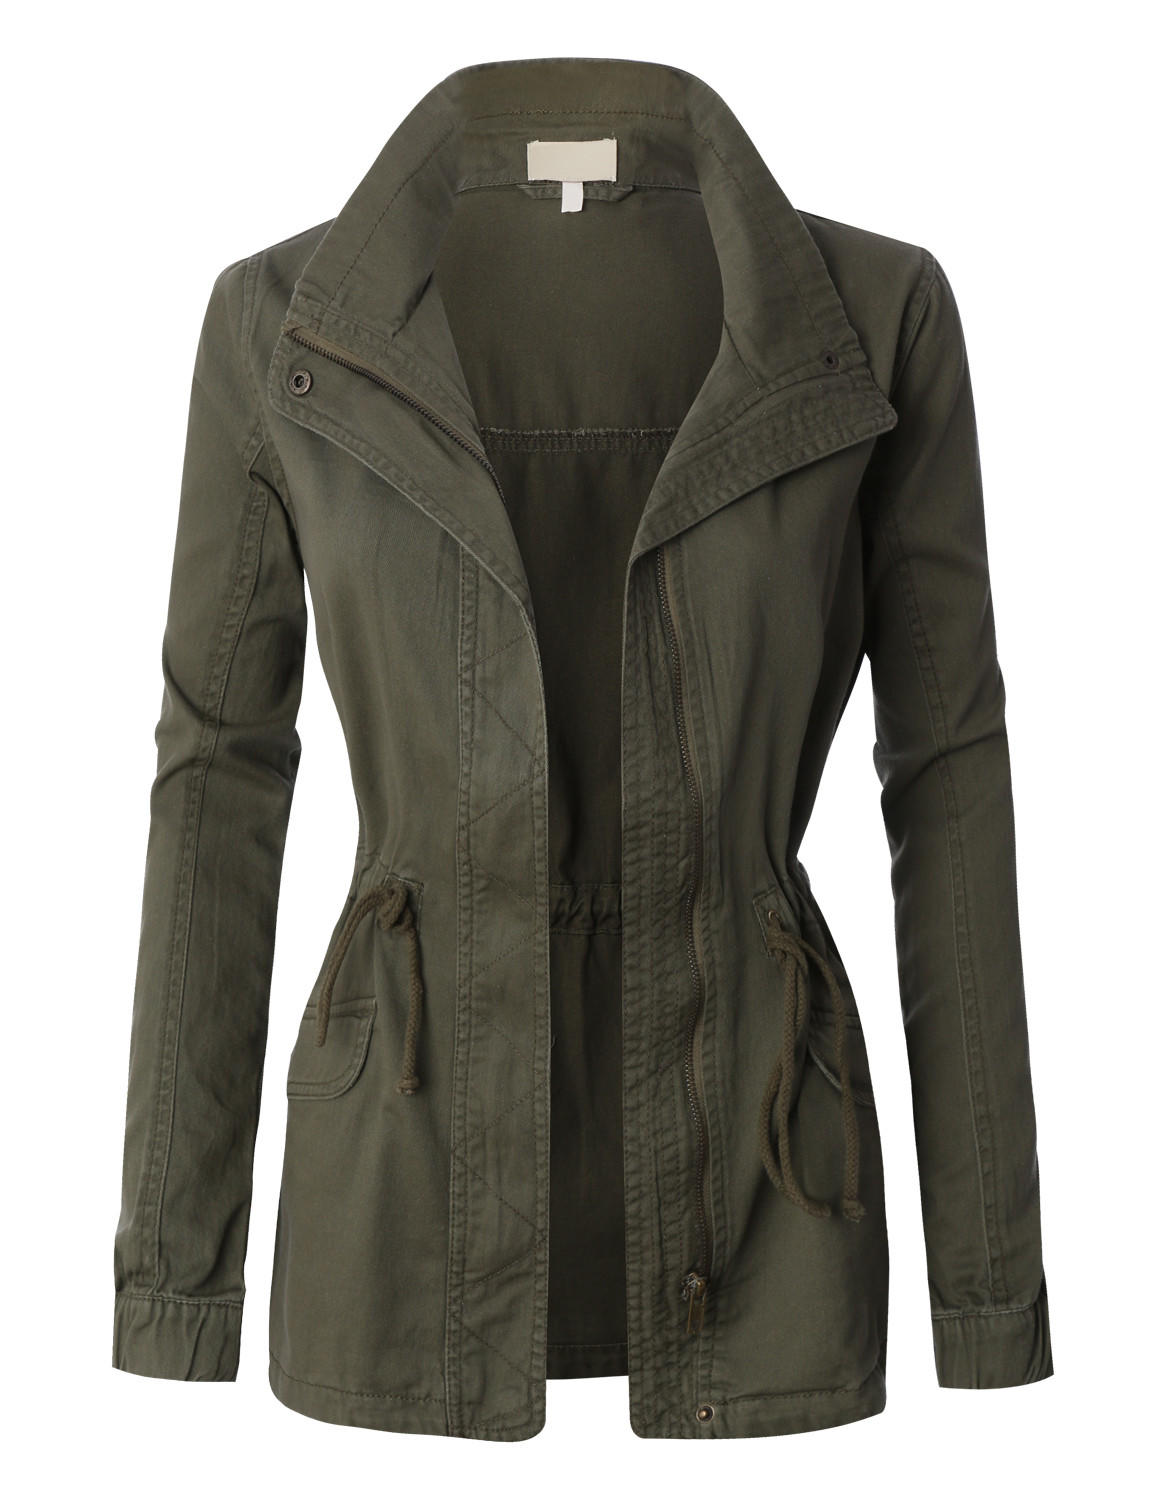 Cotton On has the latest in on-trend women's jacket & coat styles. Shop leather jackets, bombers, denim jackets & more. Women's Coats & Jackets. Don't make your outerwear an afterthought. It should be the knockout punch. The cherry on top. Stella Soft Military Jacket $ $ 2 colours available Cotton On Women Stella Soft.